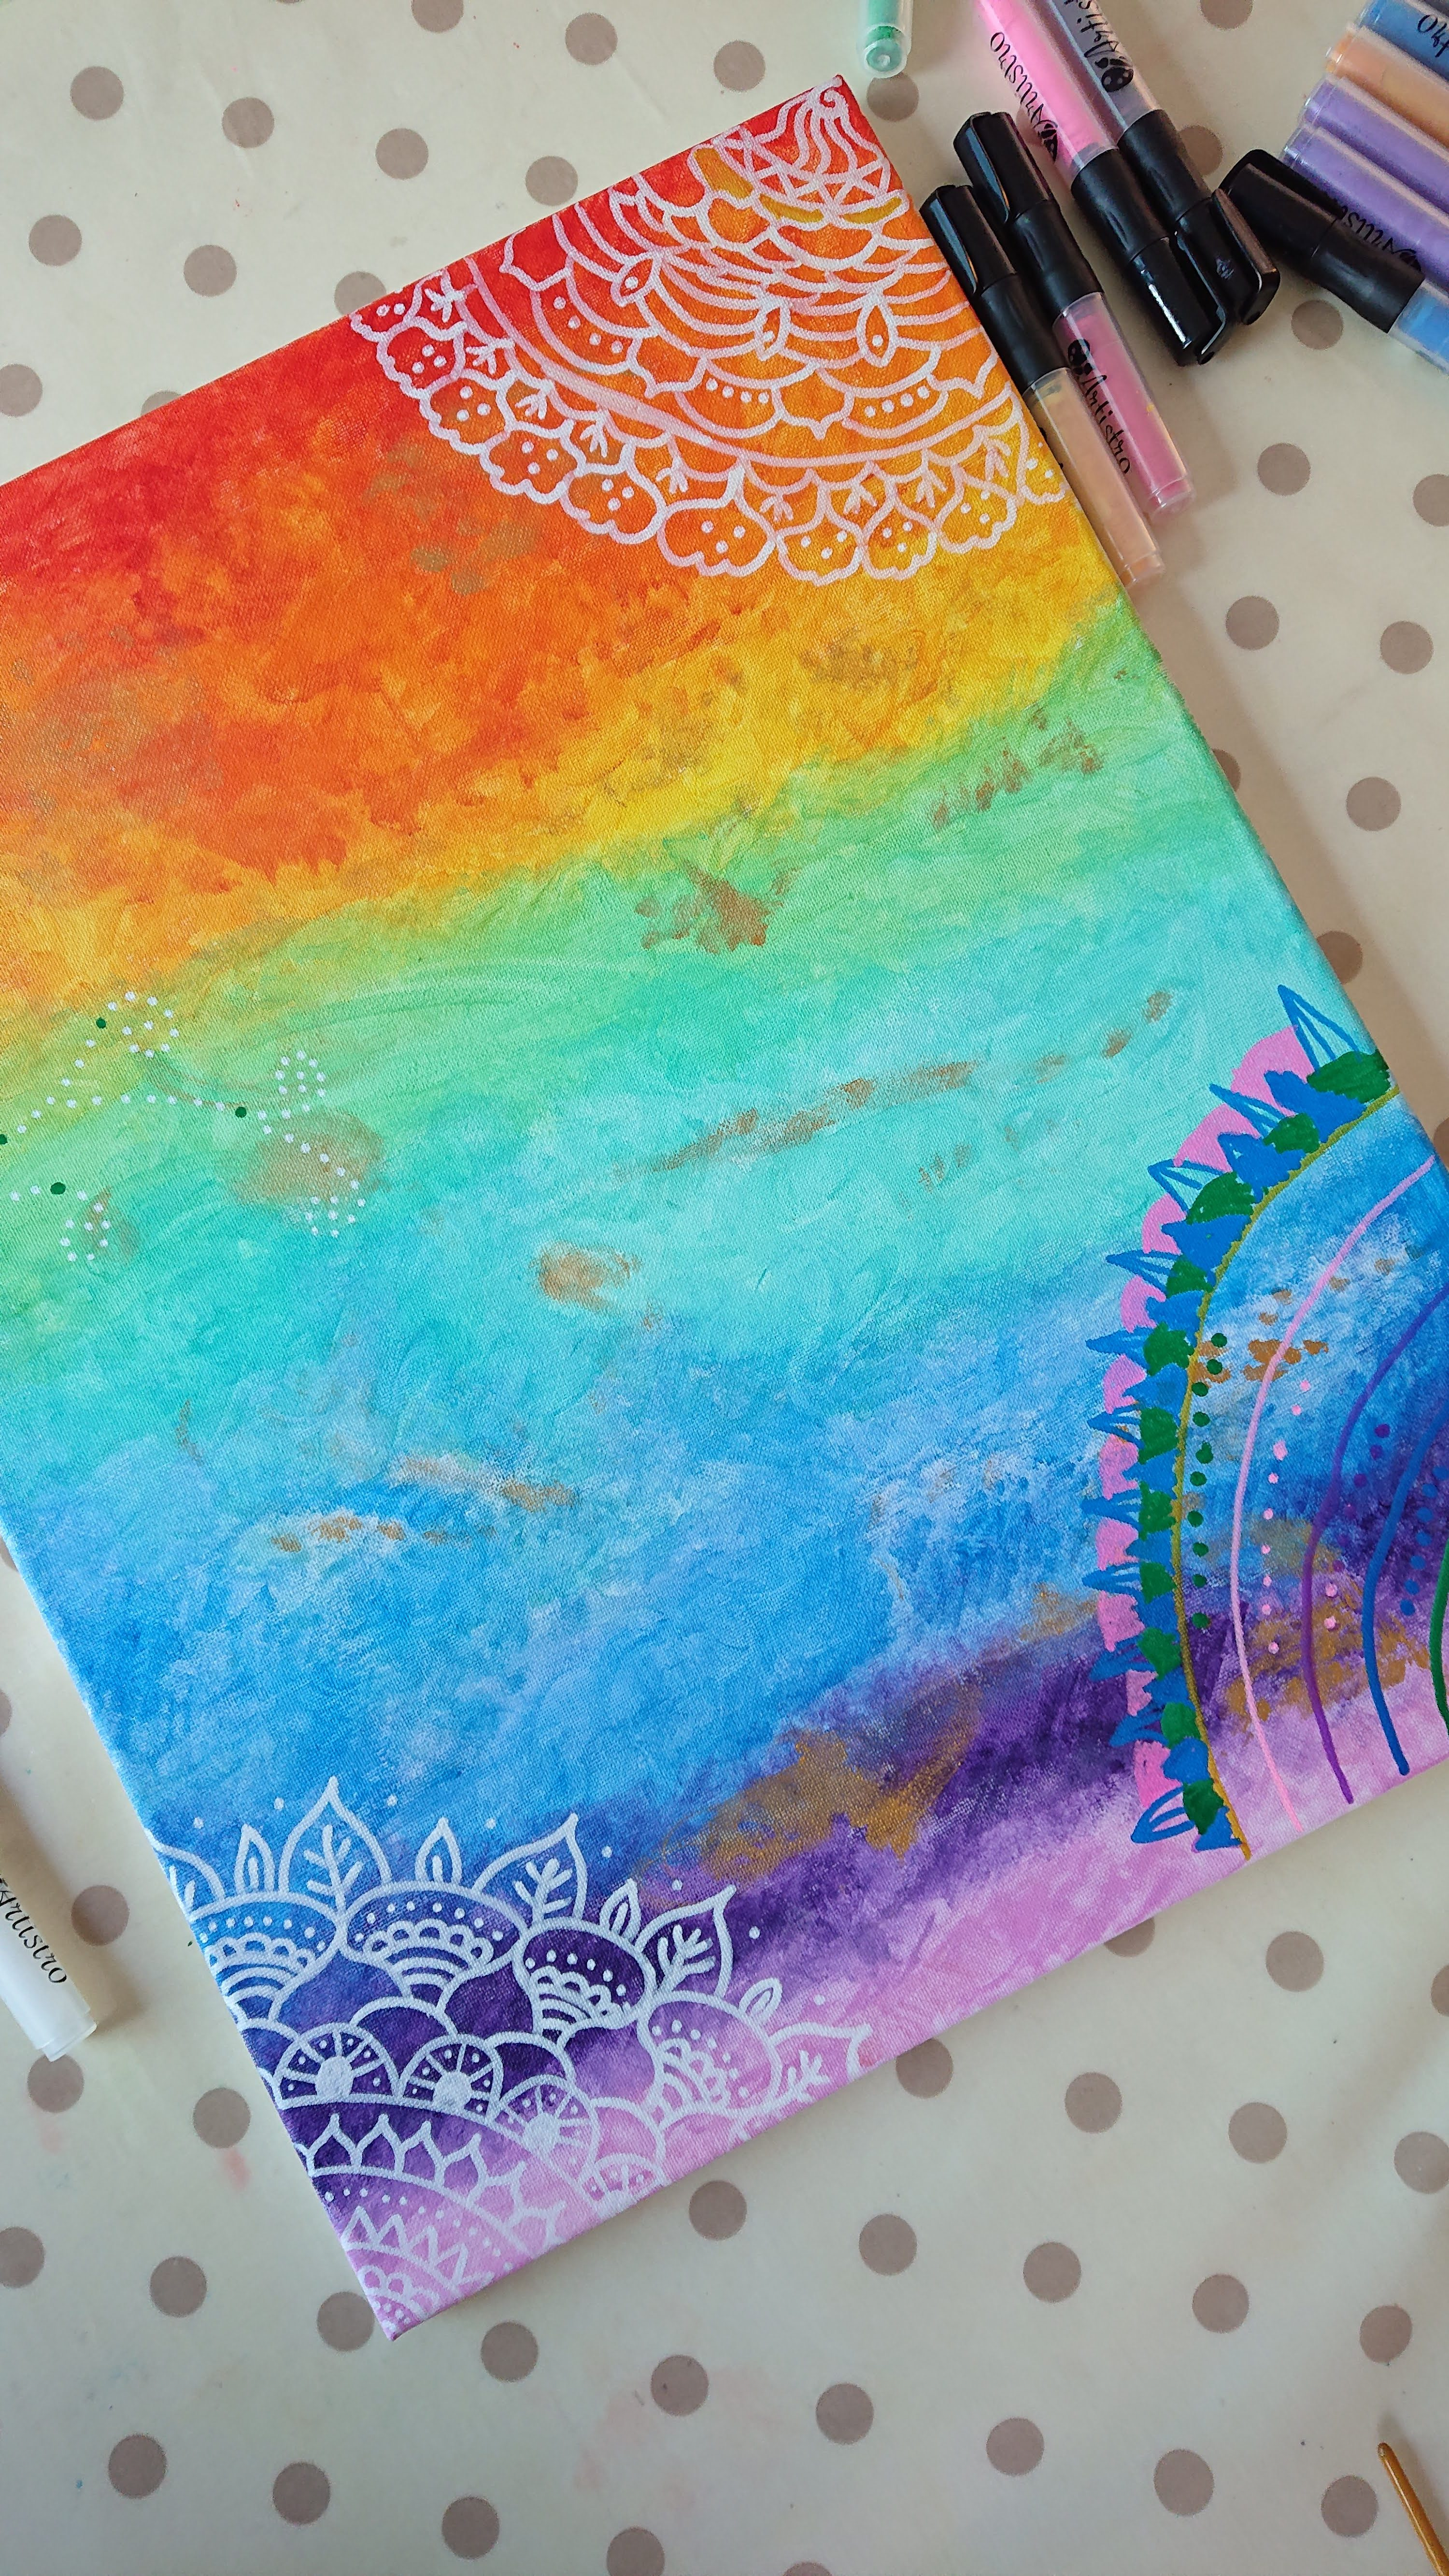 easy summer crafts for kids. Canvas painted in rainbow colours